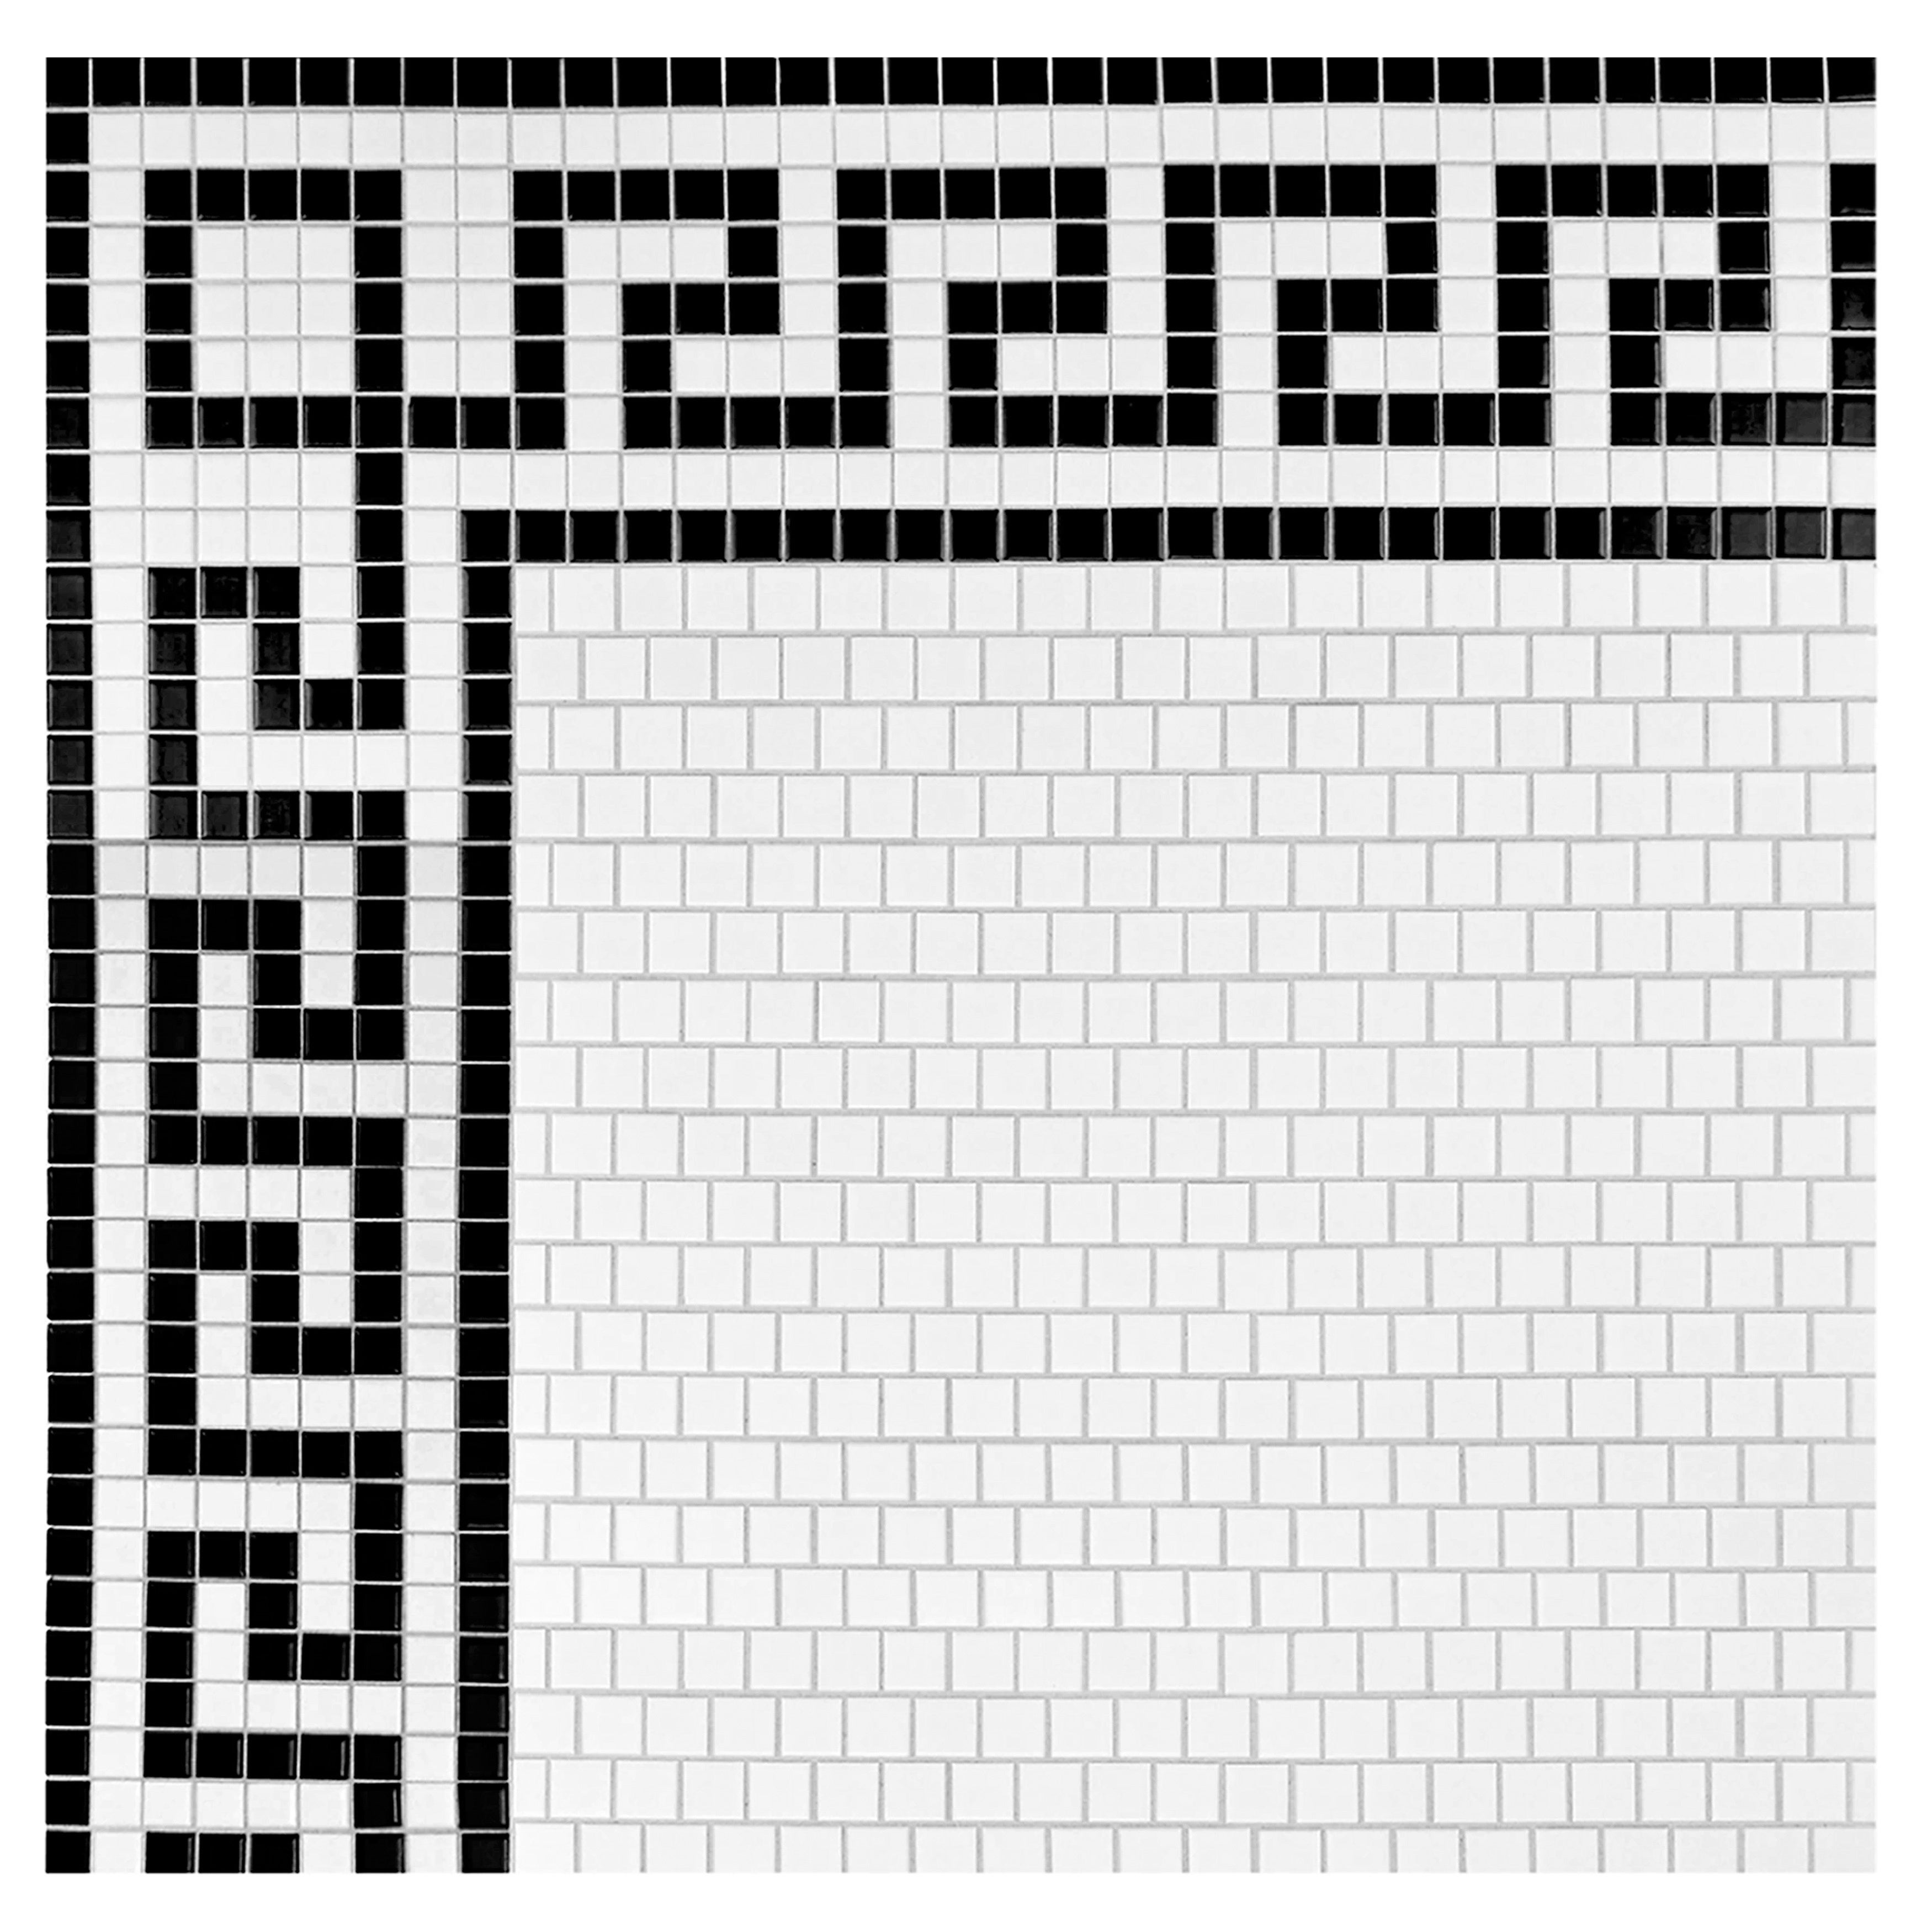 Somertile 8x10 5 Inch Metro Greek Key Matte White And Black Border Porcelain Mosaic Floor Wall Free Shipping Today 15466319